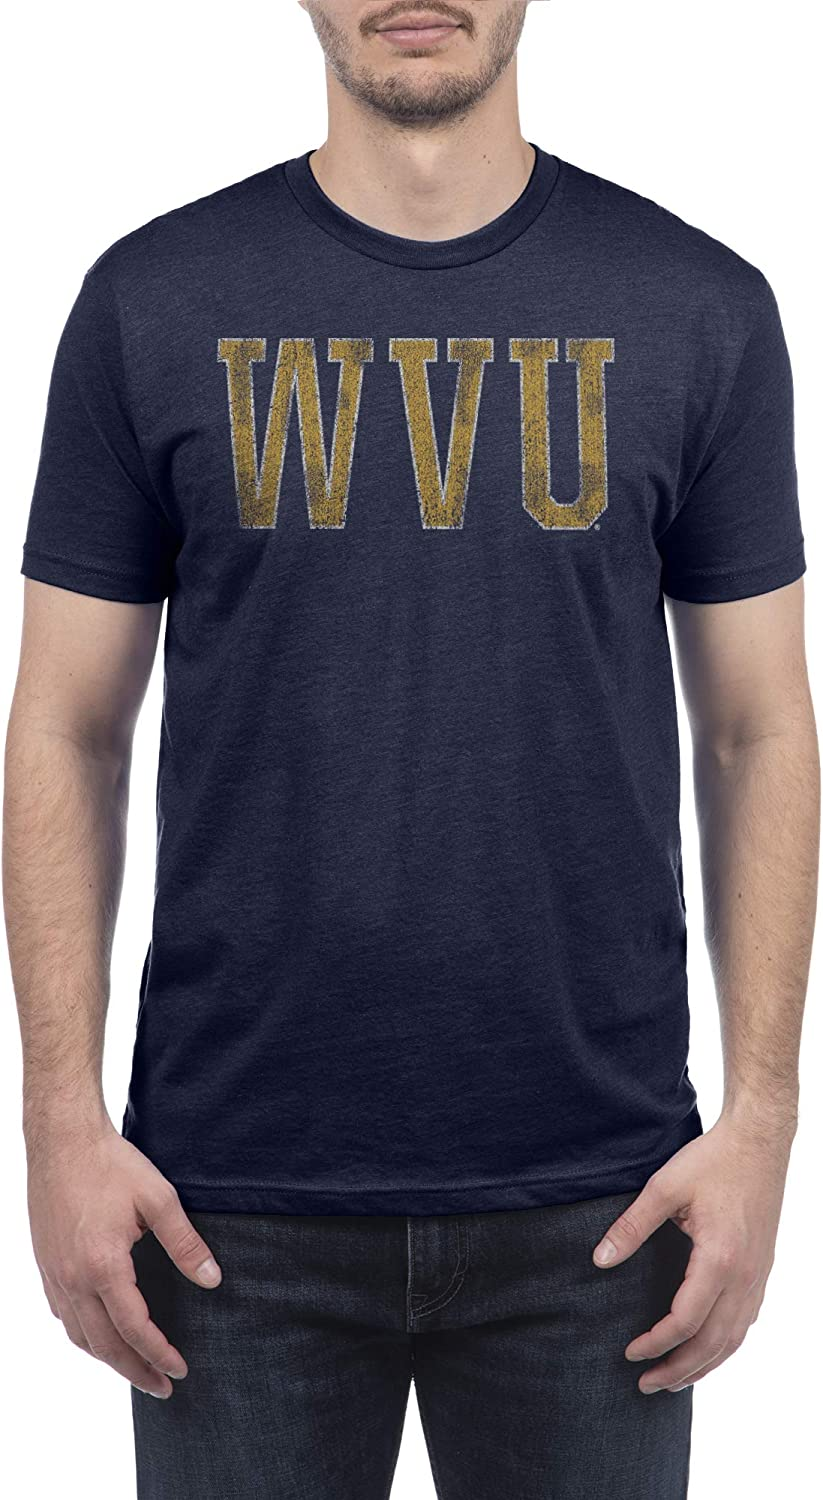 Top of the World NCAA Mens Modern Fit Premium Dual Blend Short Sleeve Team Color Distressed Icon Tee